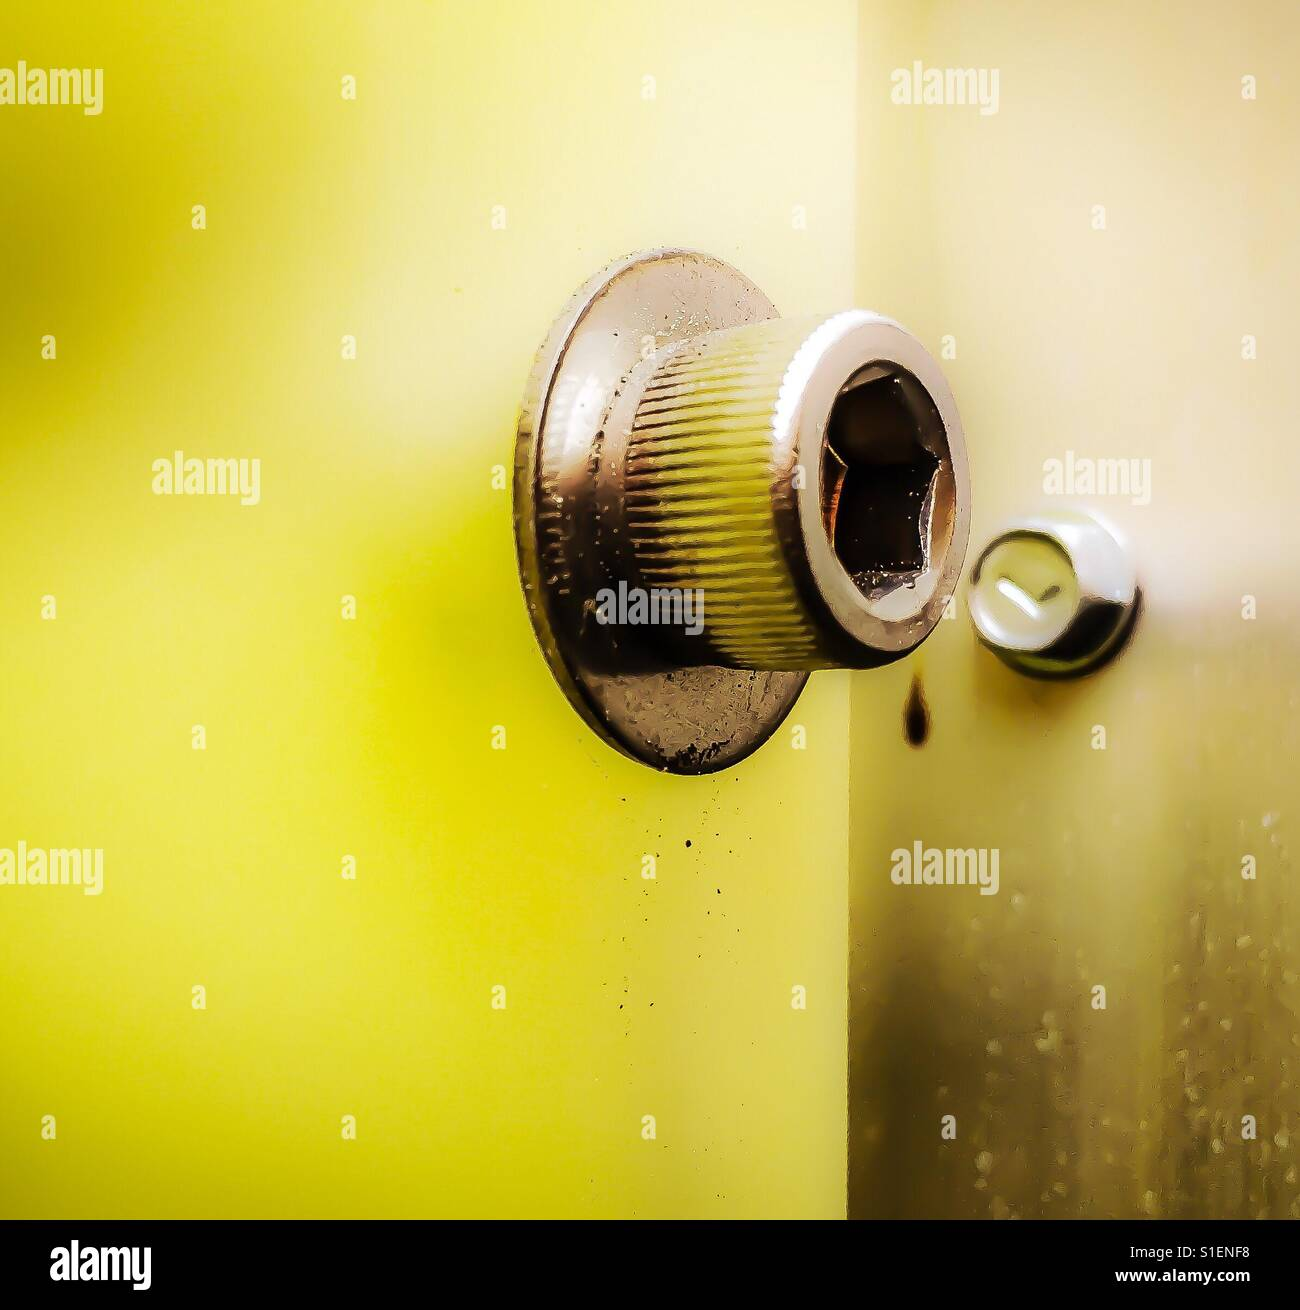 Yellow - connection of nuts, bolts, hardware Stock Photo